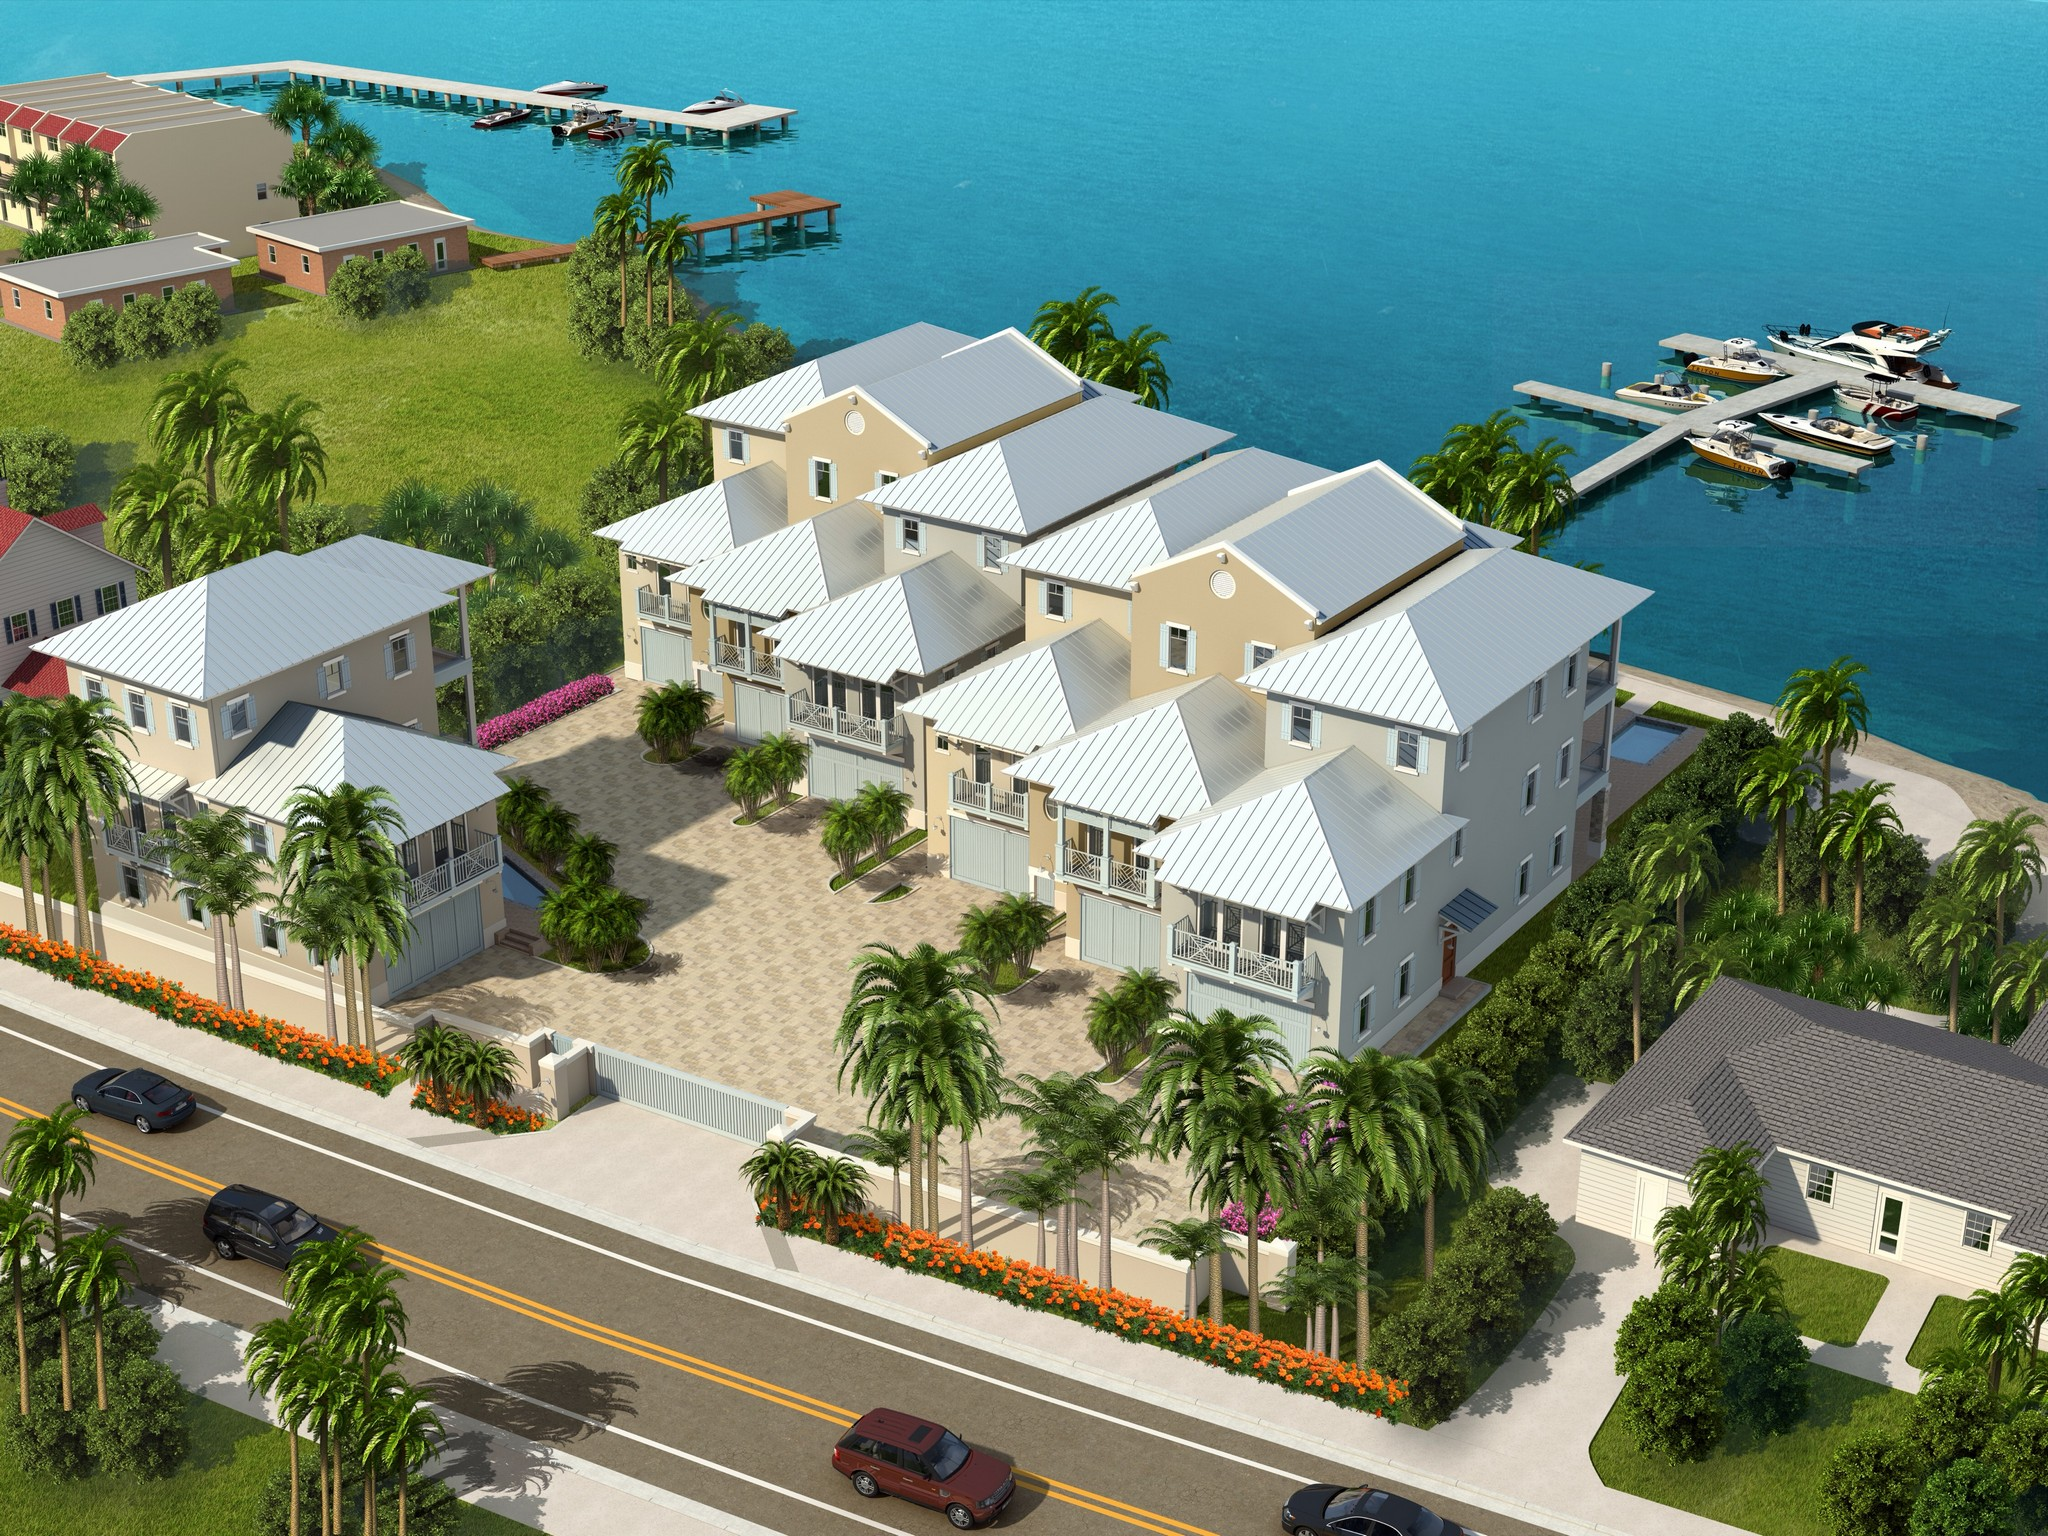 Residência urbana para Venda às Riverfront Ultra-luxury townhome 1502 Seaway Drive #2 Fort Pierce, Florida 34949 Estados Unidos